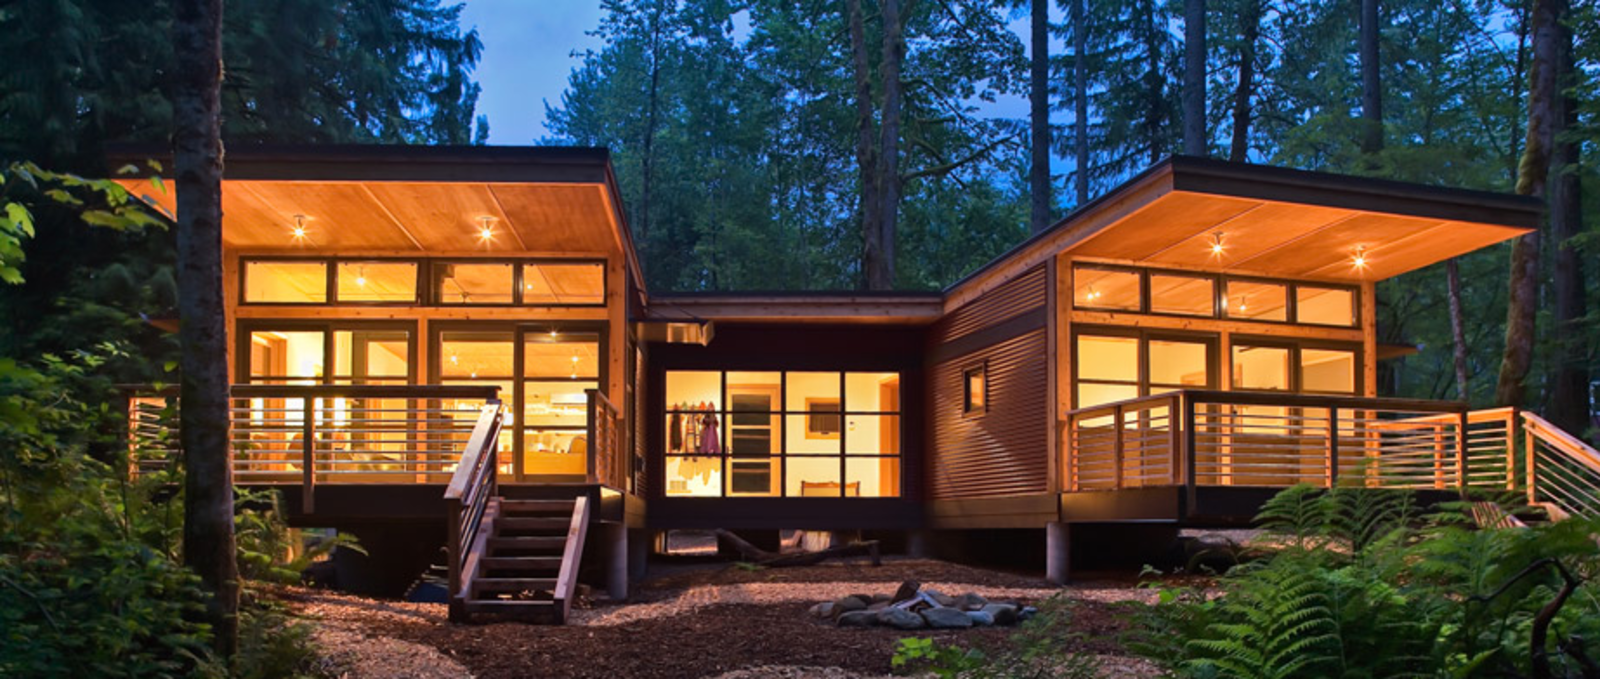 8 Prefab Firms In Washington Aiming To